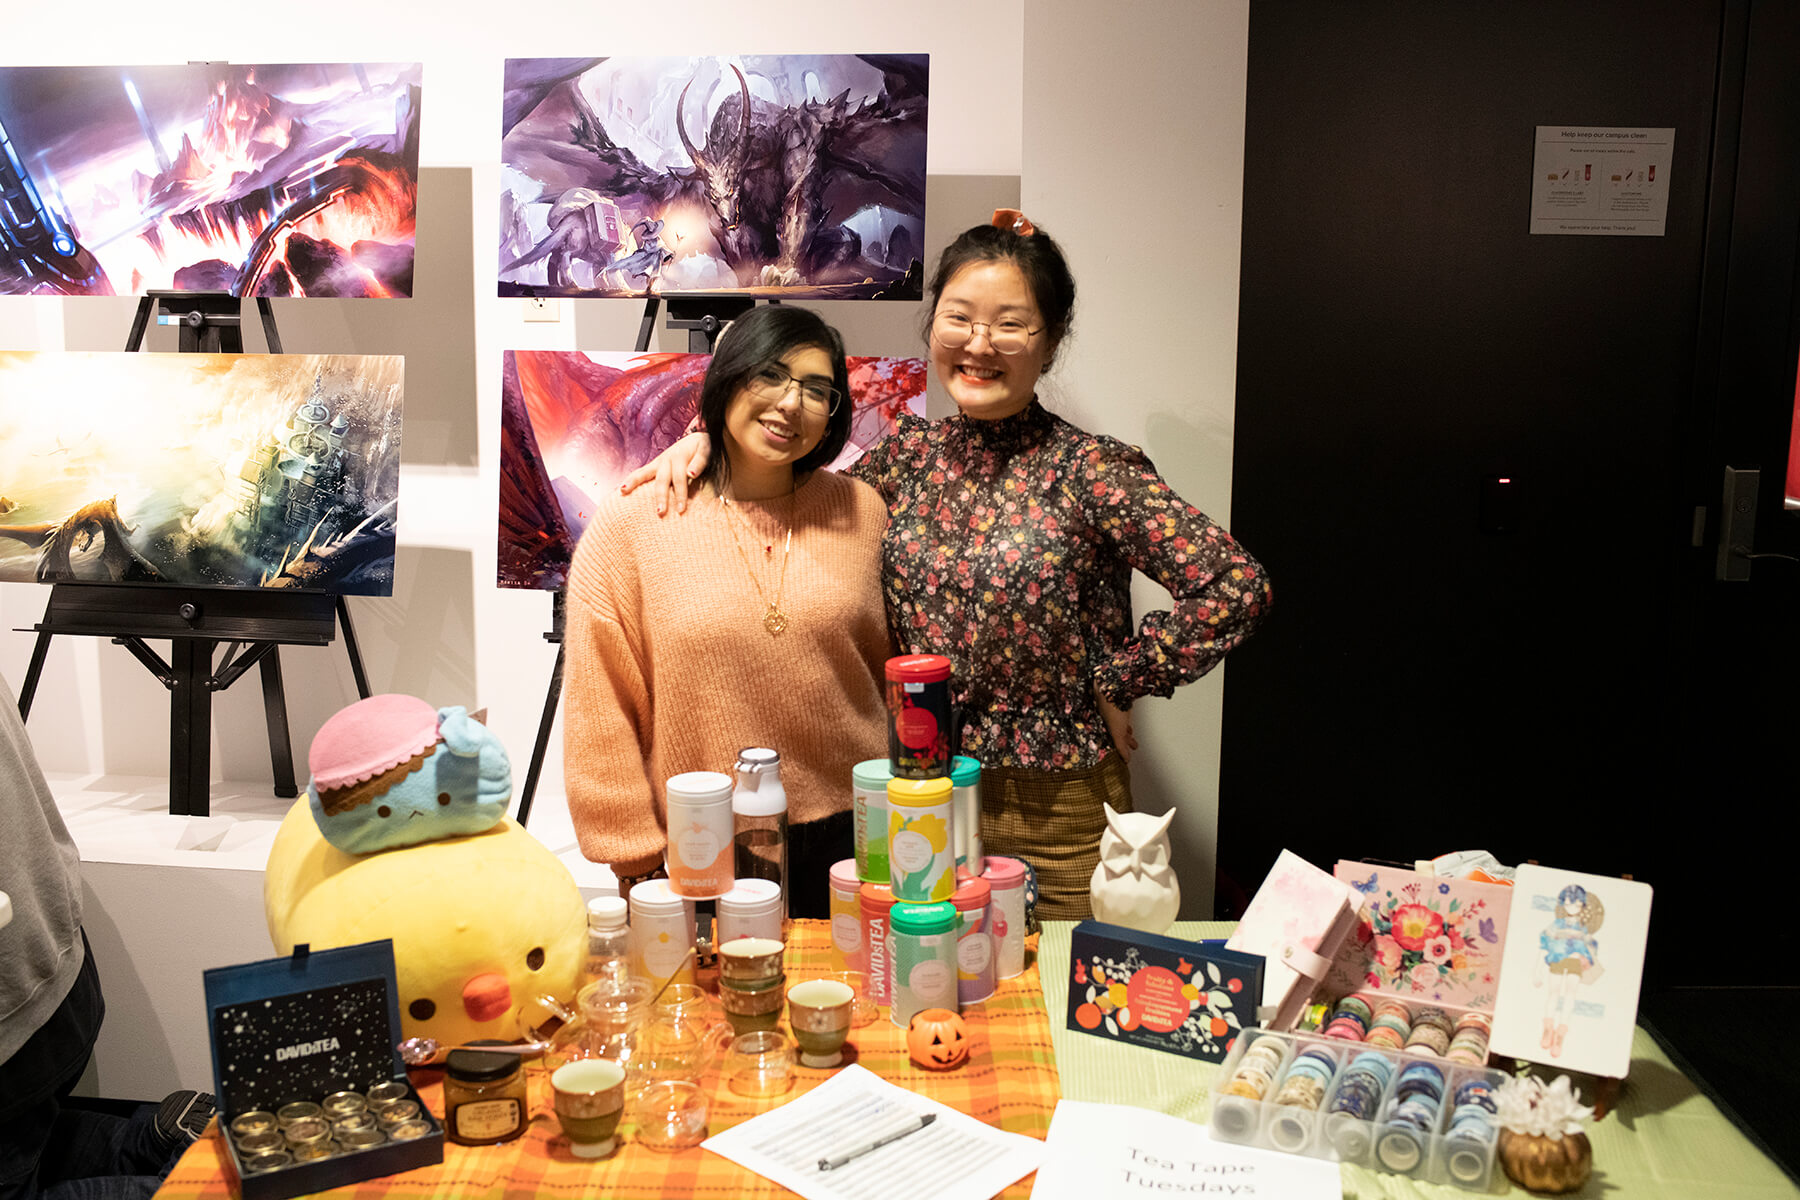 Two students stand behind a table arranged with teas and knickknacks.